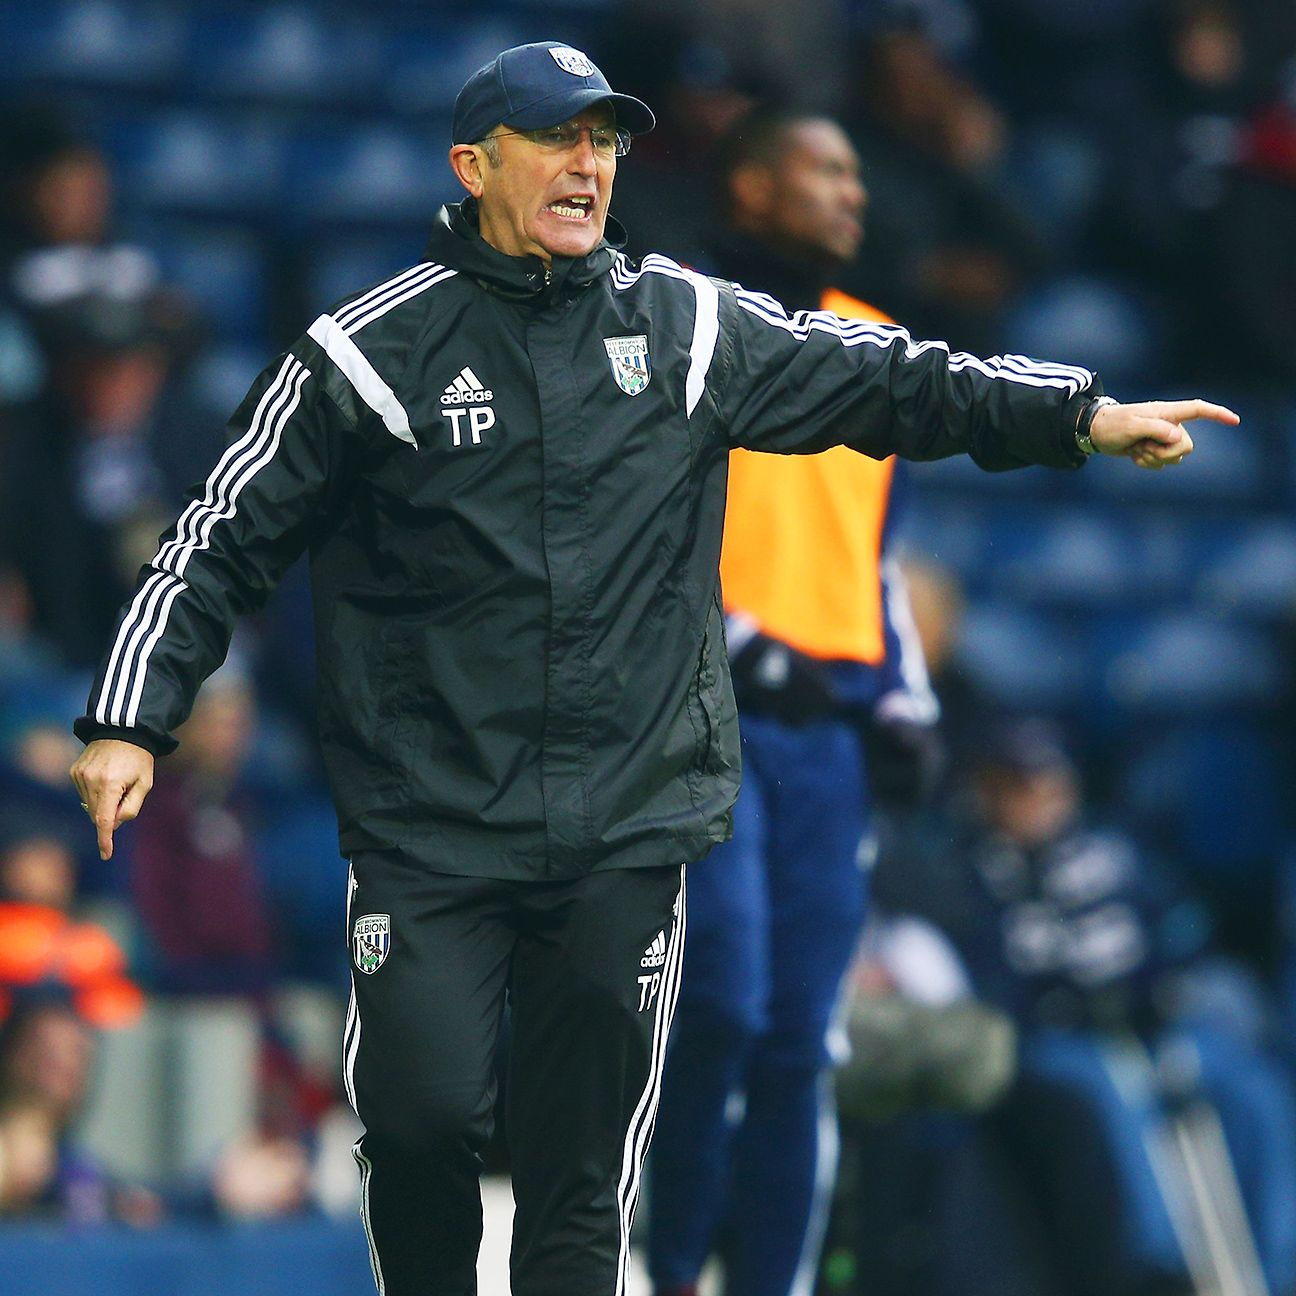 Tony Pulis' defensive reputation took a bit of a hit following West Brom's 3-2 defeat to Everton.